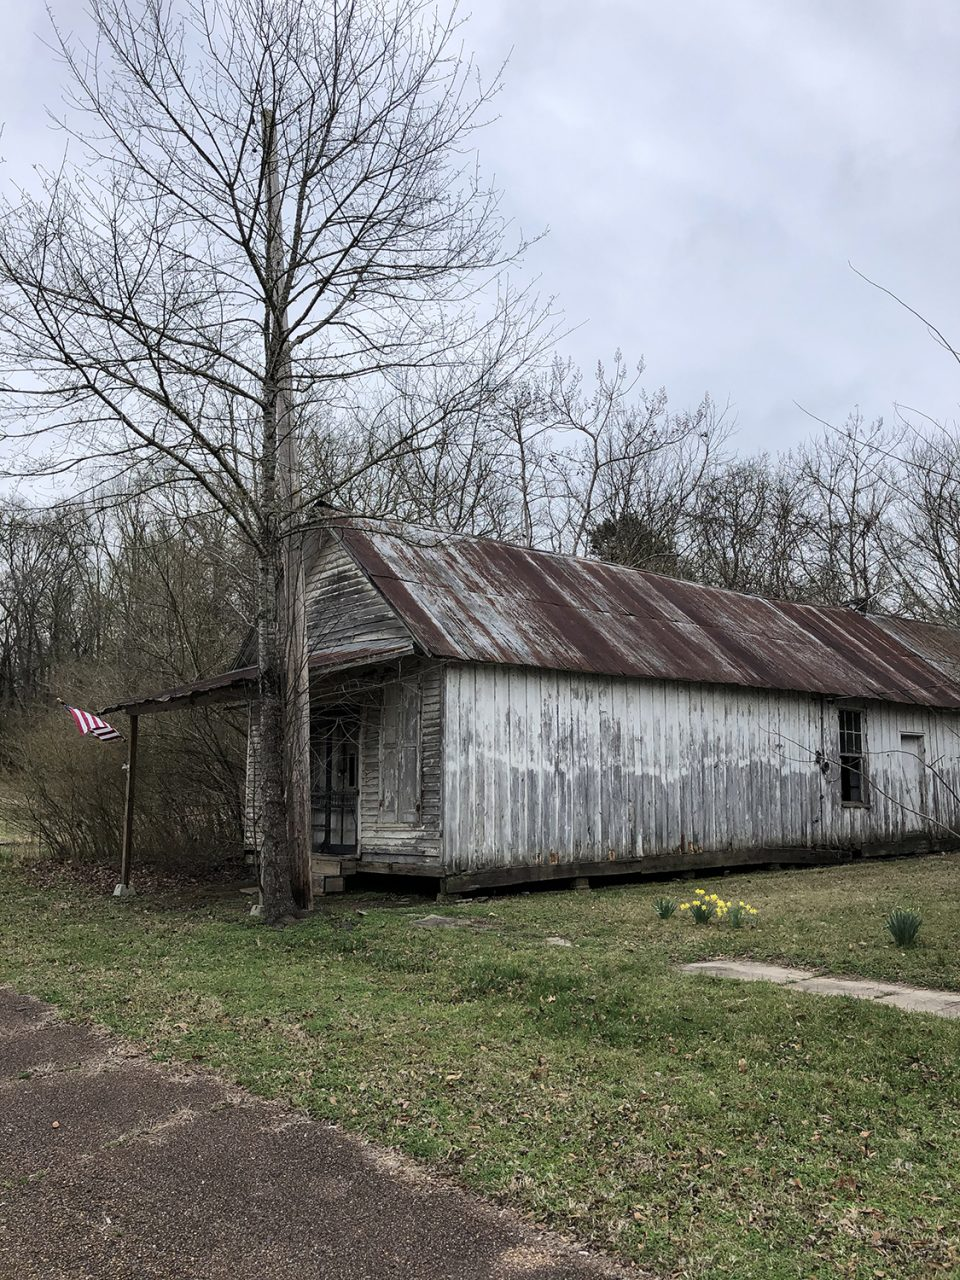 An old wooden mercantile store. All of the abandoned buildings had new flags -- a sign of local pride? Notice the daffodils in bloom.